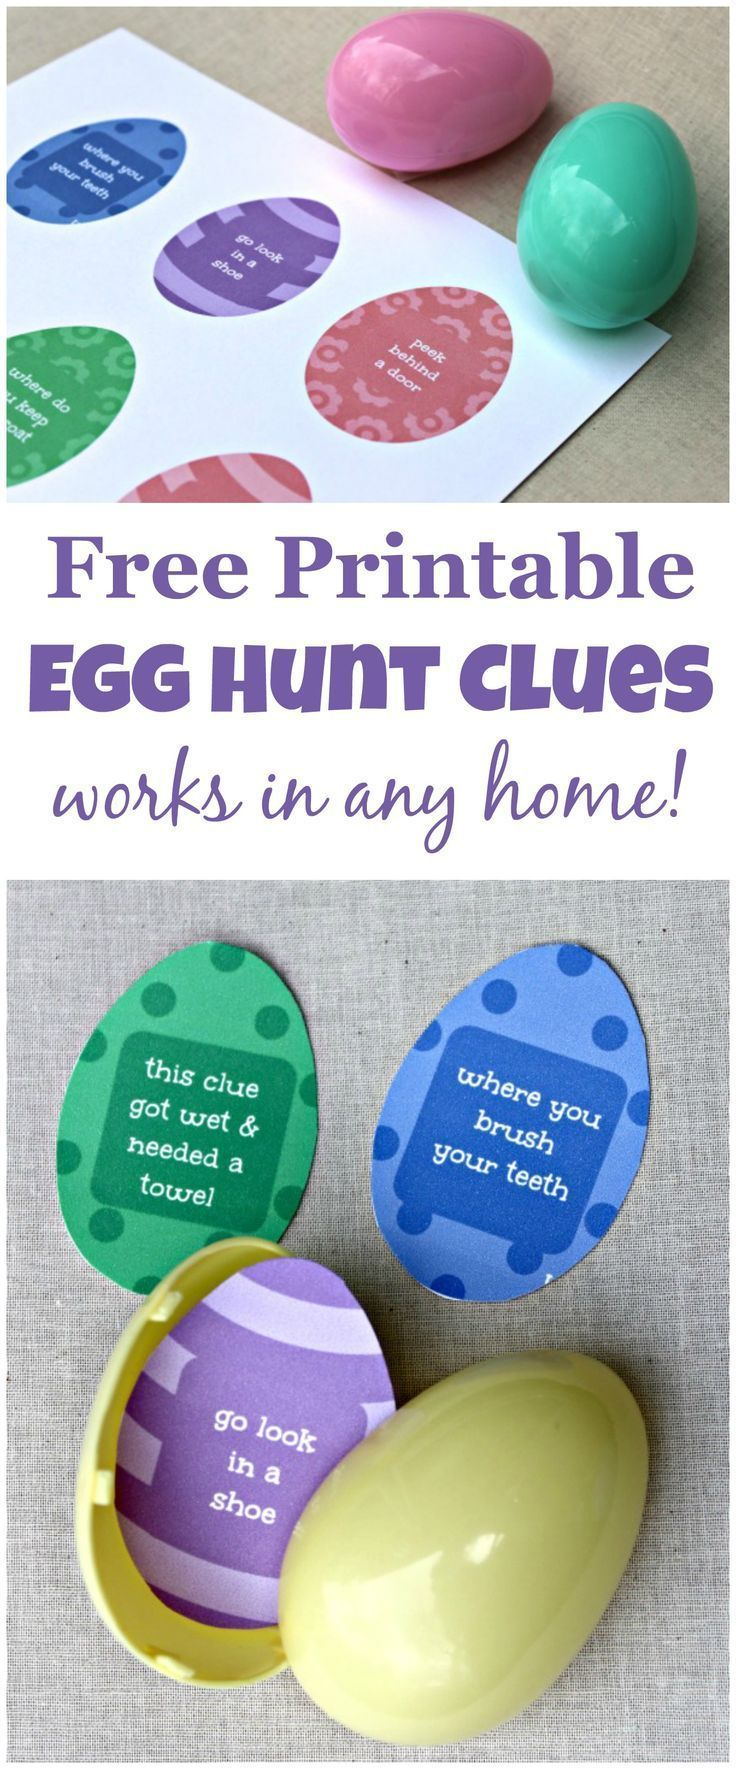 Easter Egg Hunt idea with Free printable clues -- works in any house!  Easter activities | family fun for Spring